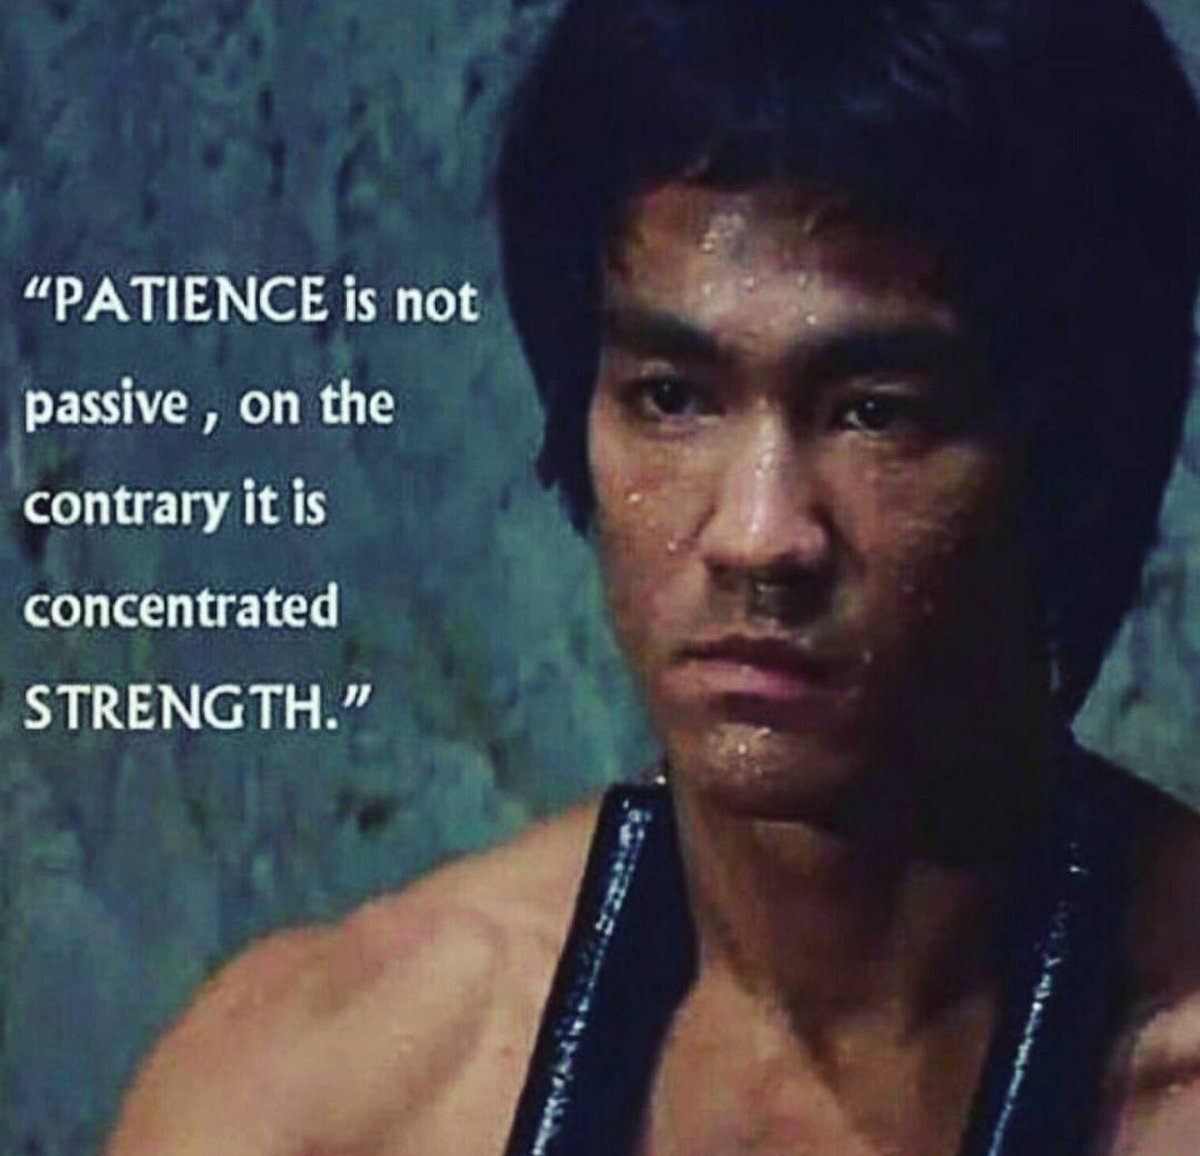 patience is not passive on the contrary it is concentrated patience is not passive on the contrary it is concentrated strength